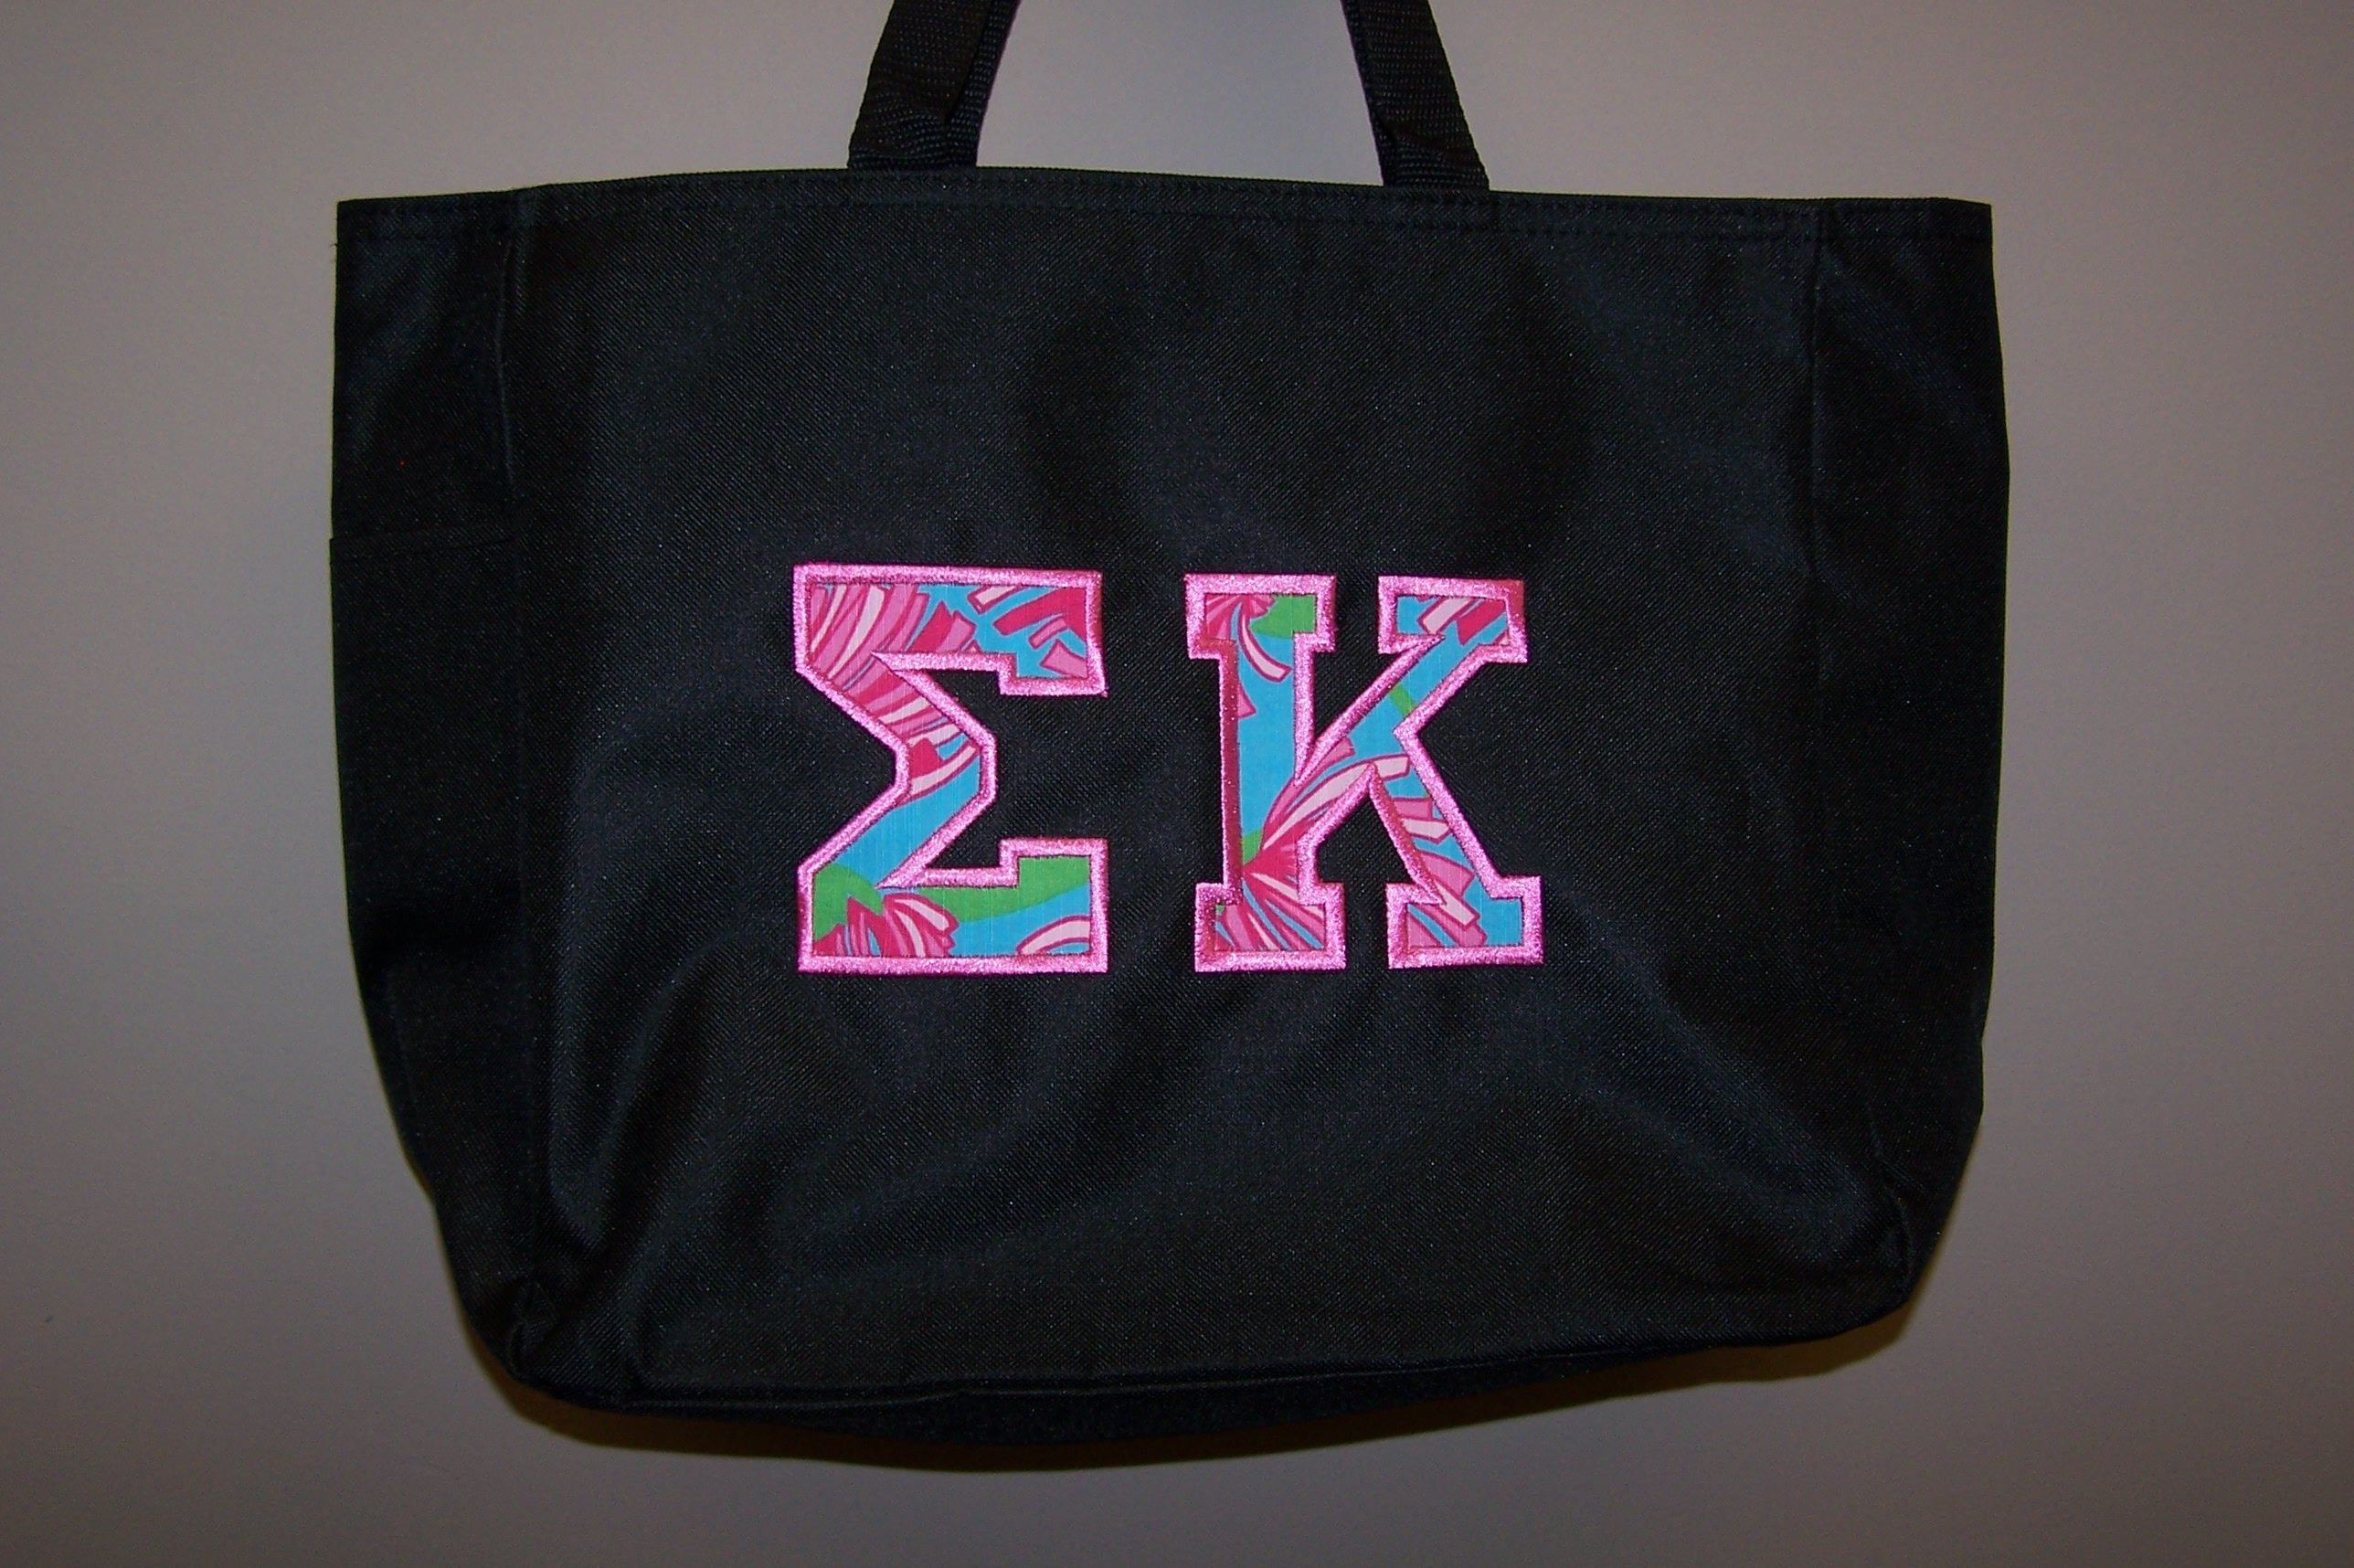 e4f71da95b Sigma Kappa Canvas Tote with Lilly Kissue Fabric Letters and Hot Pink  Accent Thread